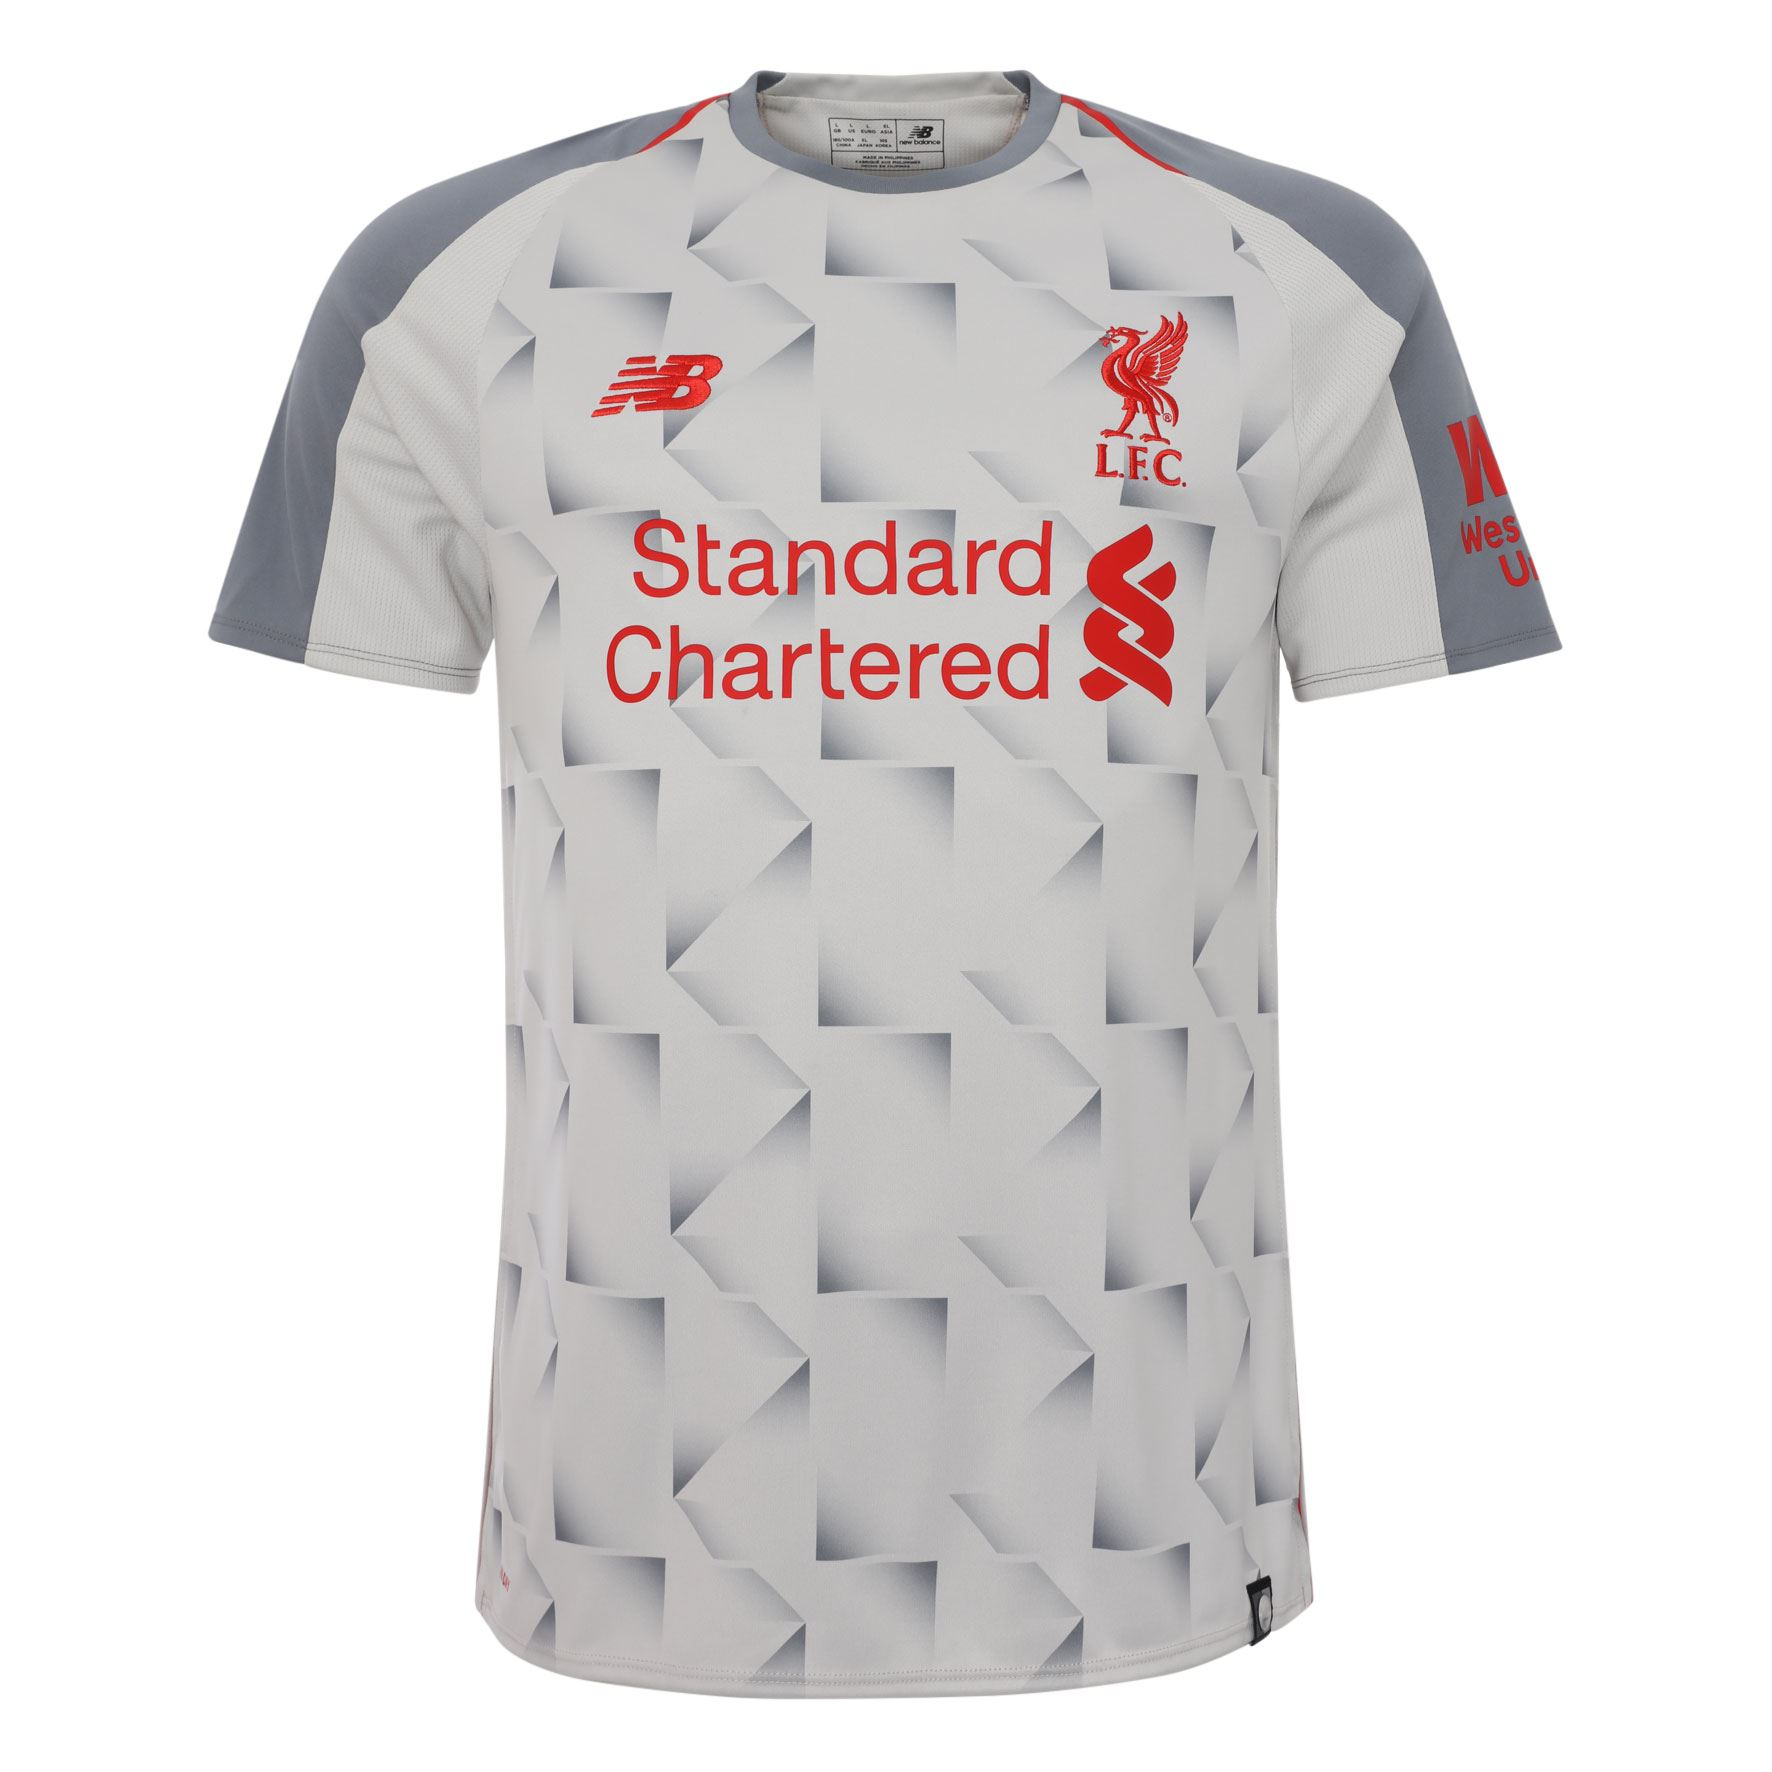 6730a04f896 Details about Liverpool FC Short Sleeve Grey Mens Soccer Third Jersey 18 19  LFC Official